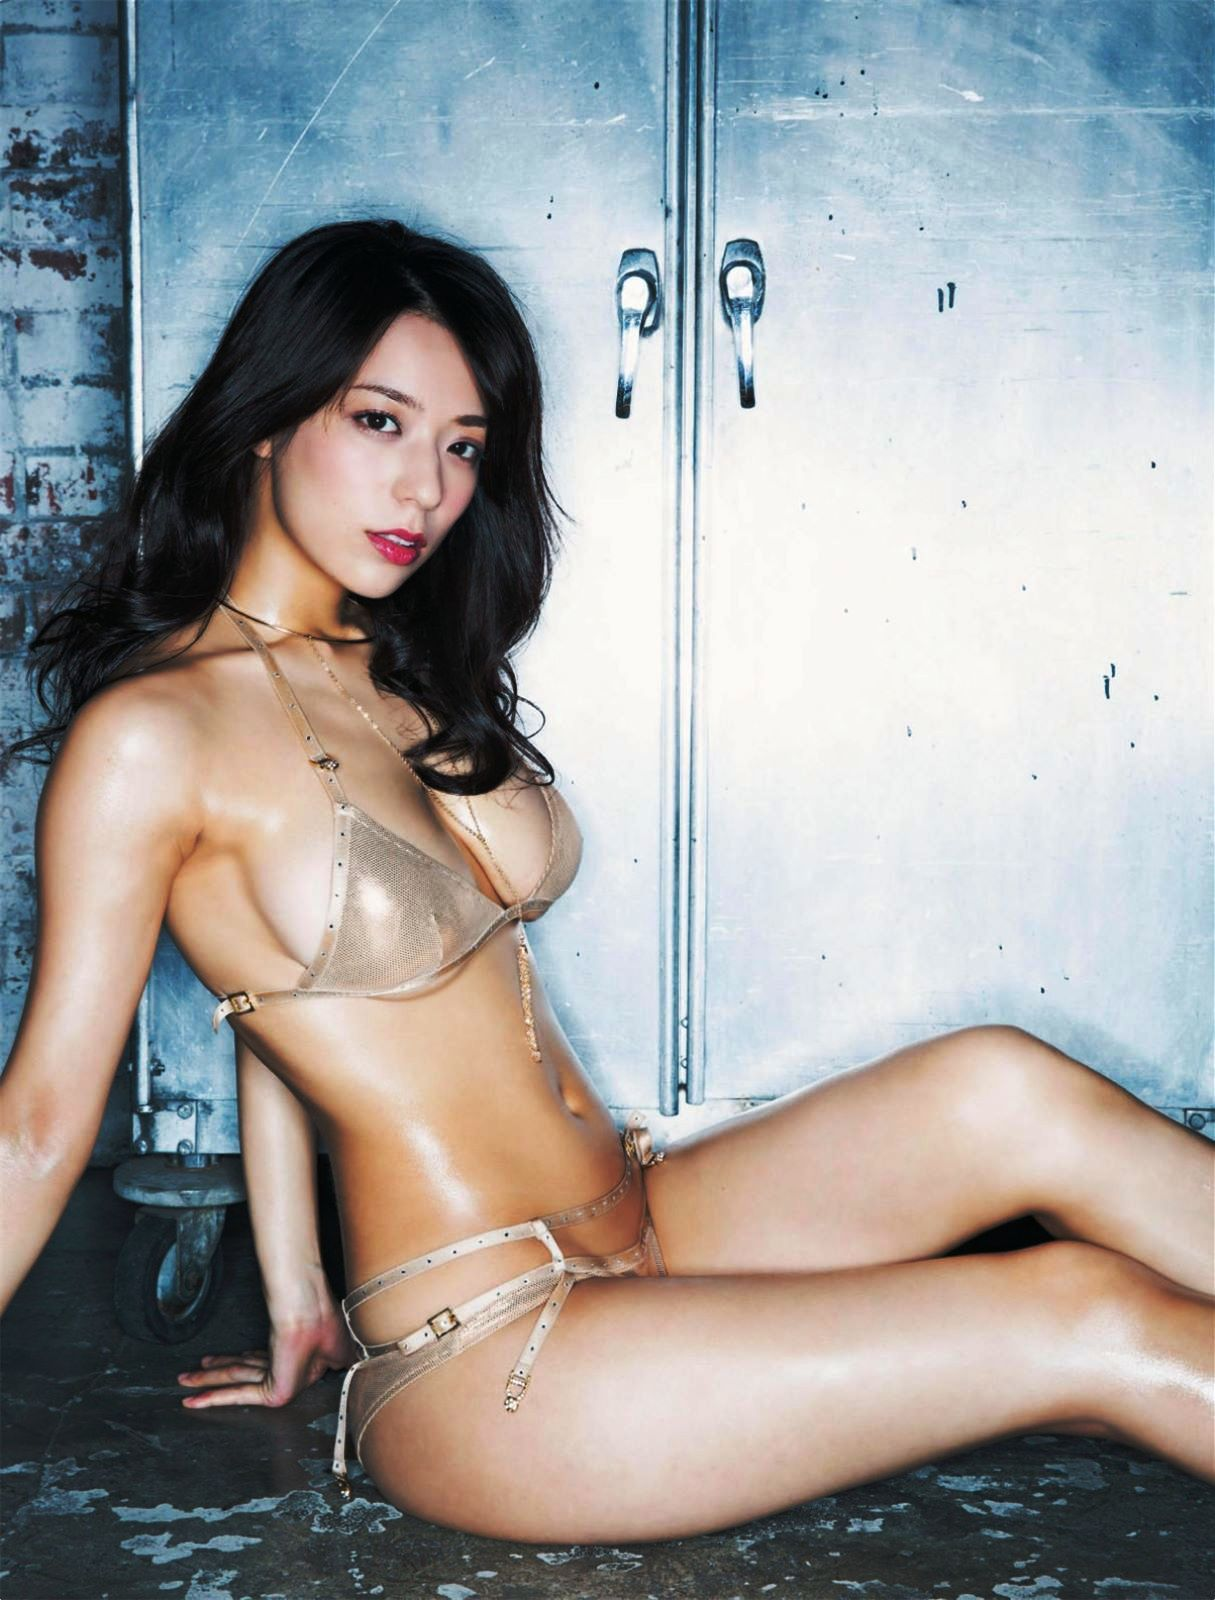 Japanese nude model GRAVURE.COM moneyshot